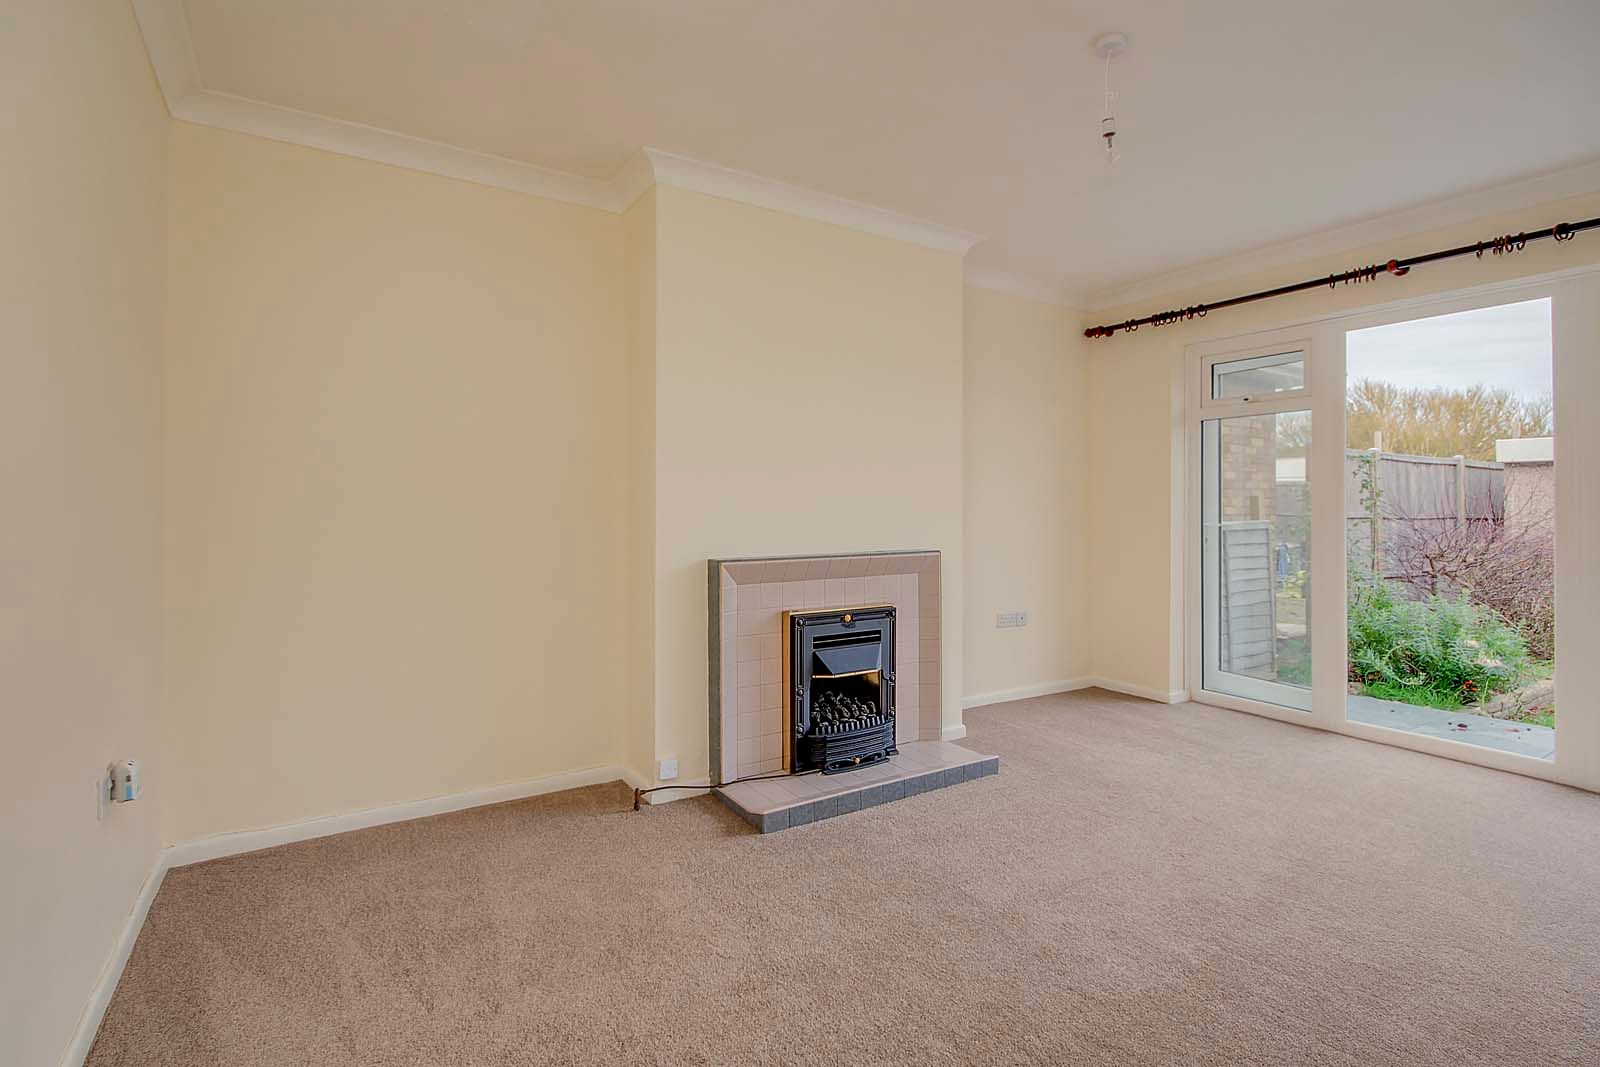 2 bed bungalow for sale in Ashurst Way COMP July 2019 2